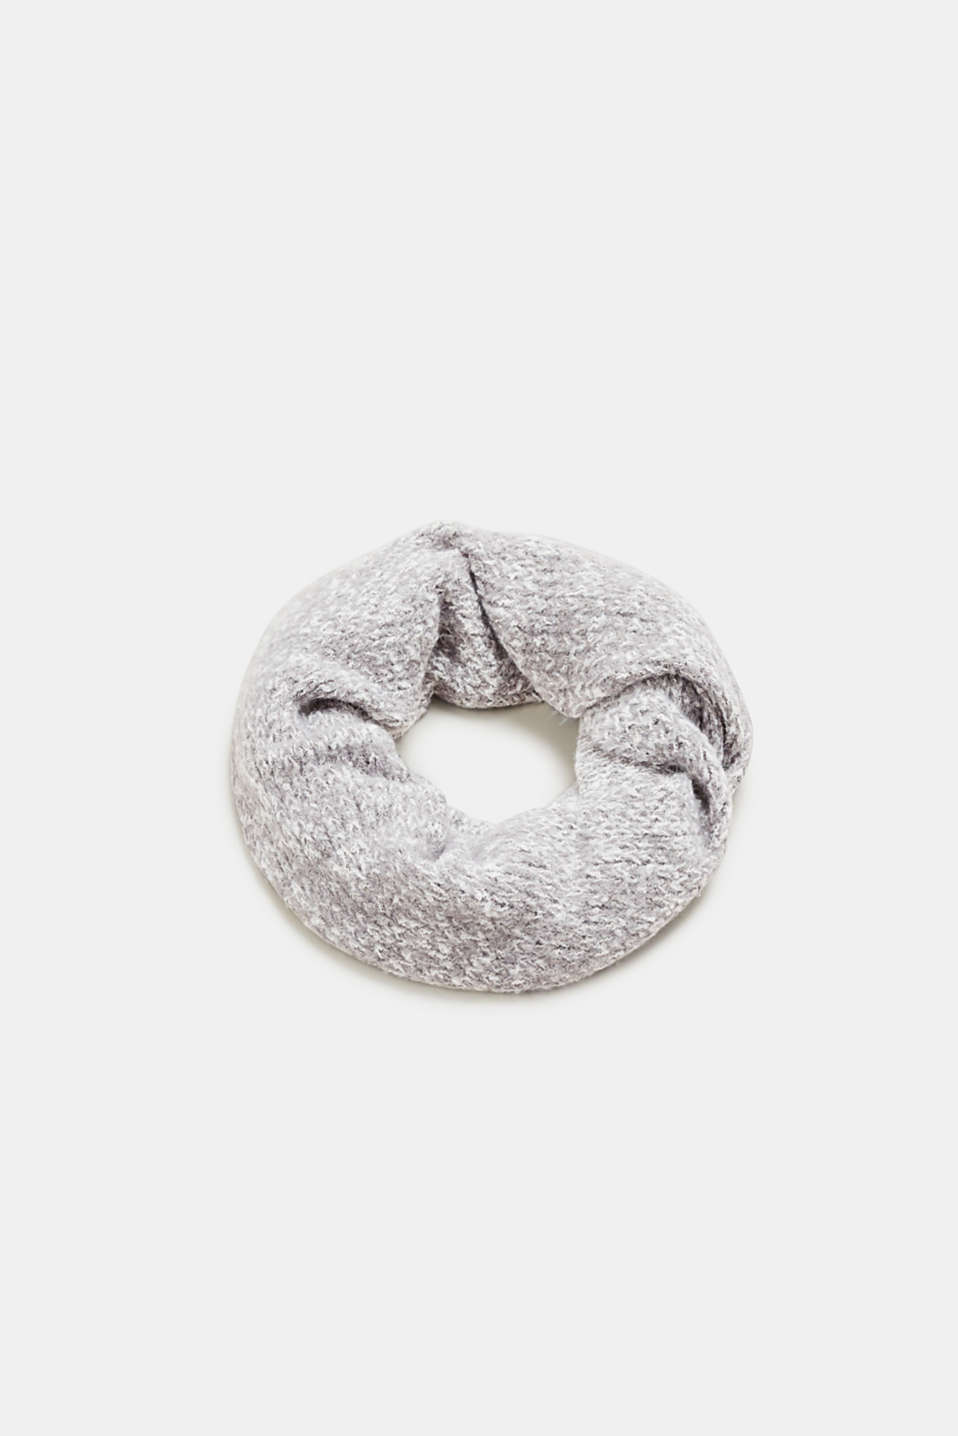 We love knitwear! The distinctive knit with effect yarn makes this scarf a head-turner.